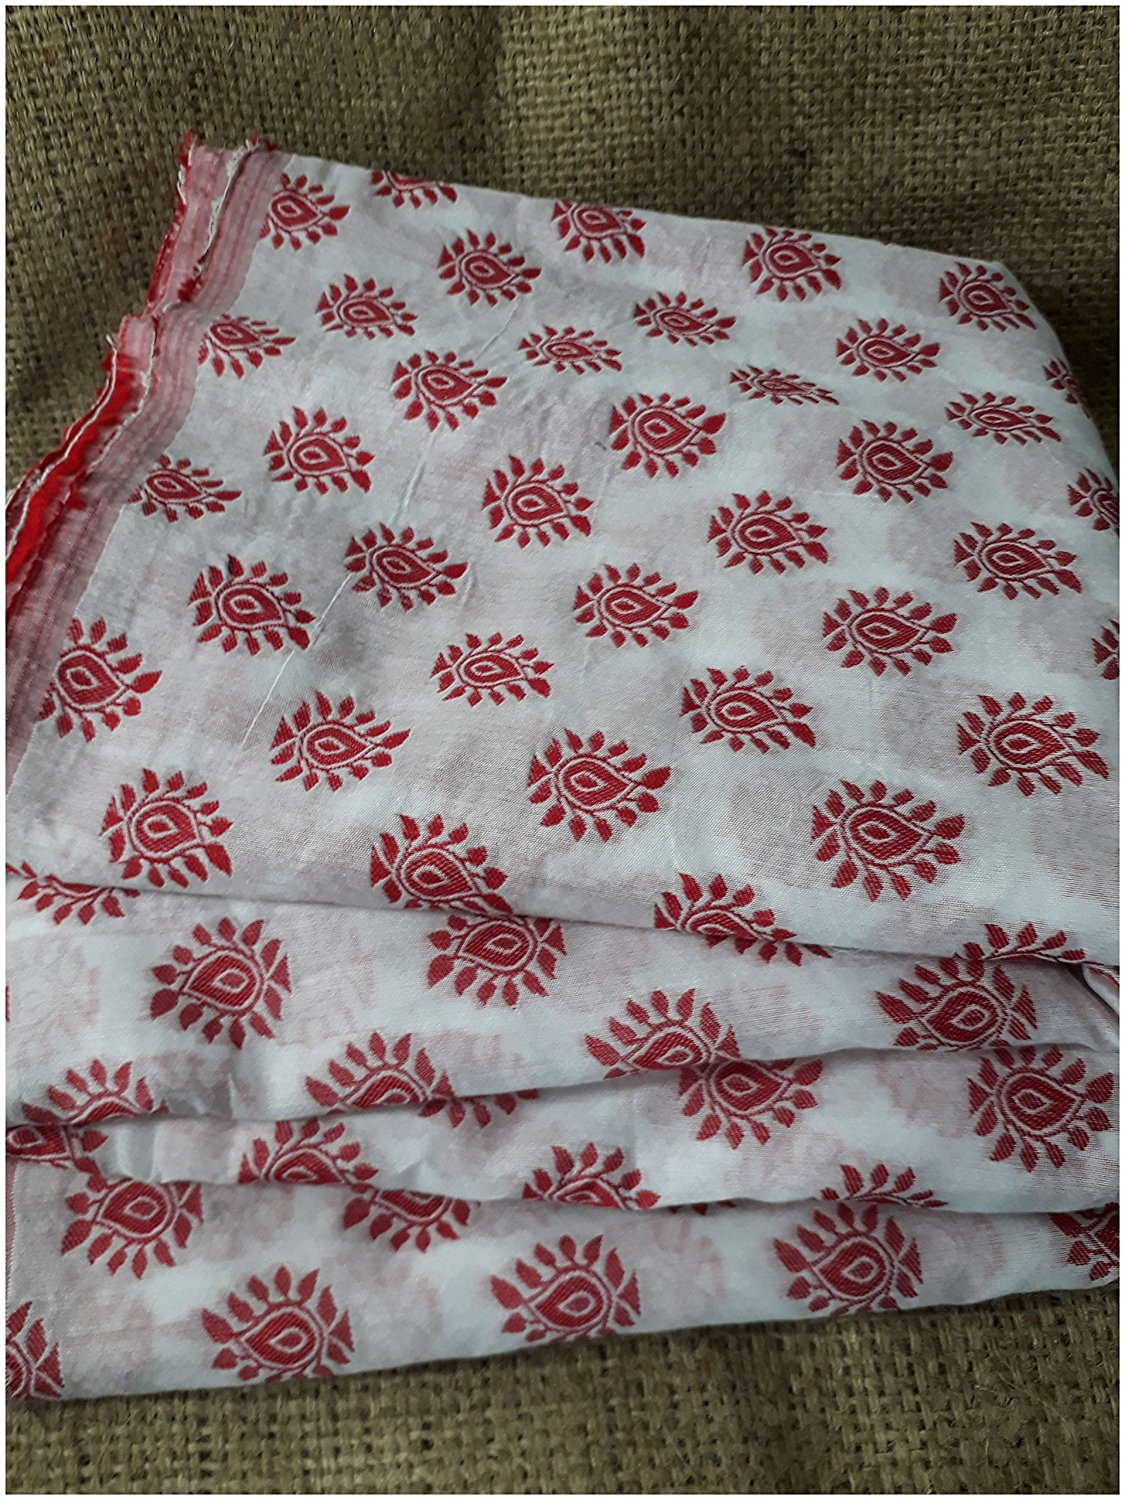 buy embroidered fabric online fabric shopping india Embroidered, Jaquard Cotton Off White, Red 47 inches Wide 1783